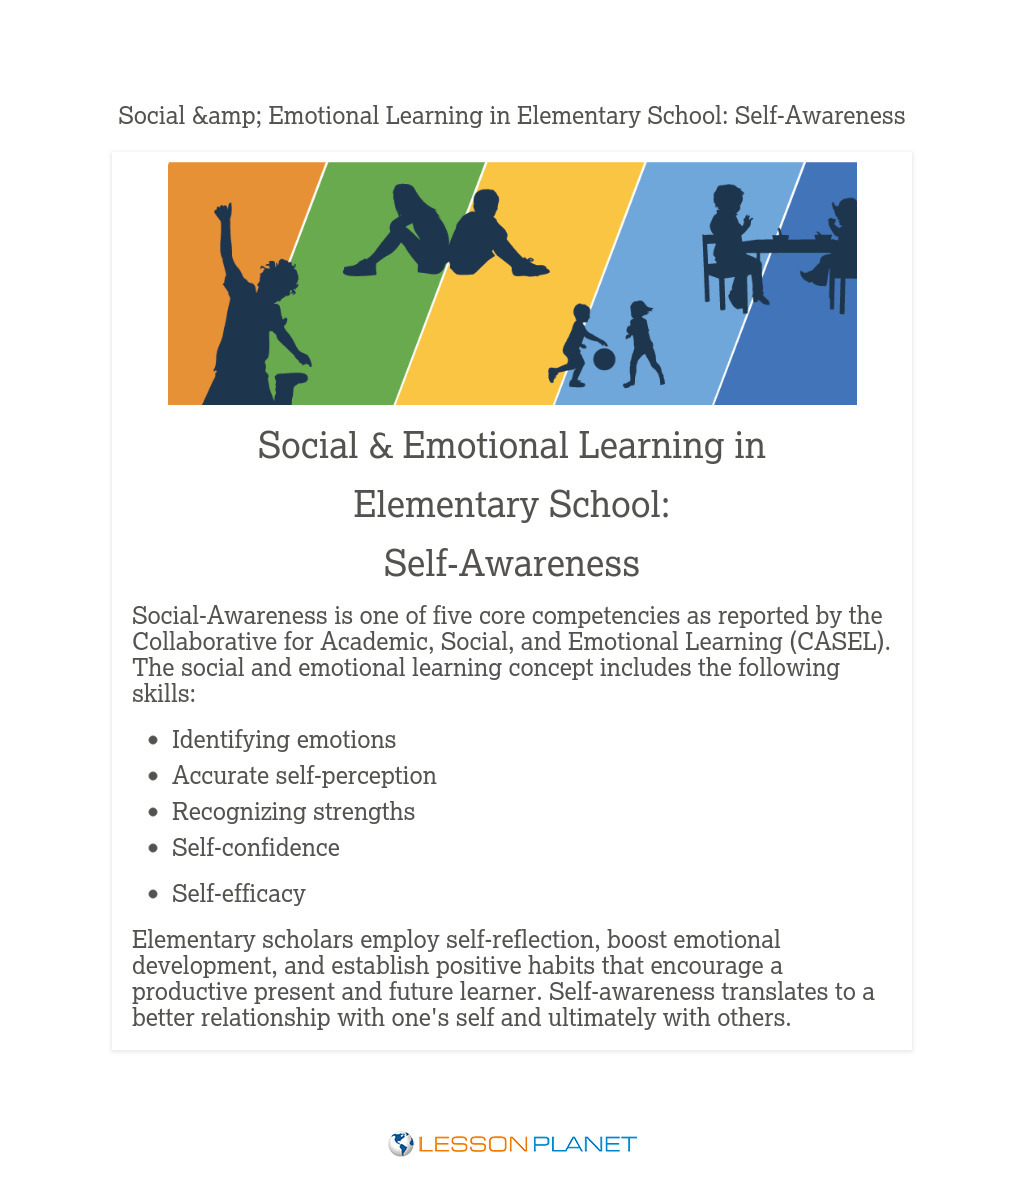 Social & Emotional Learning in Elementary School: Self-Awareness